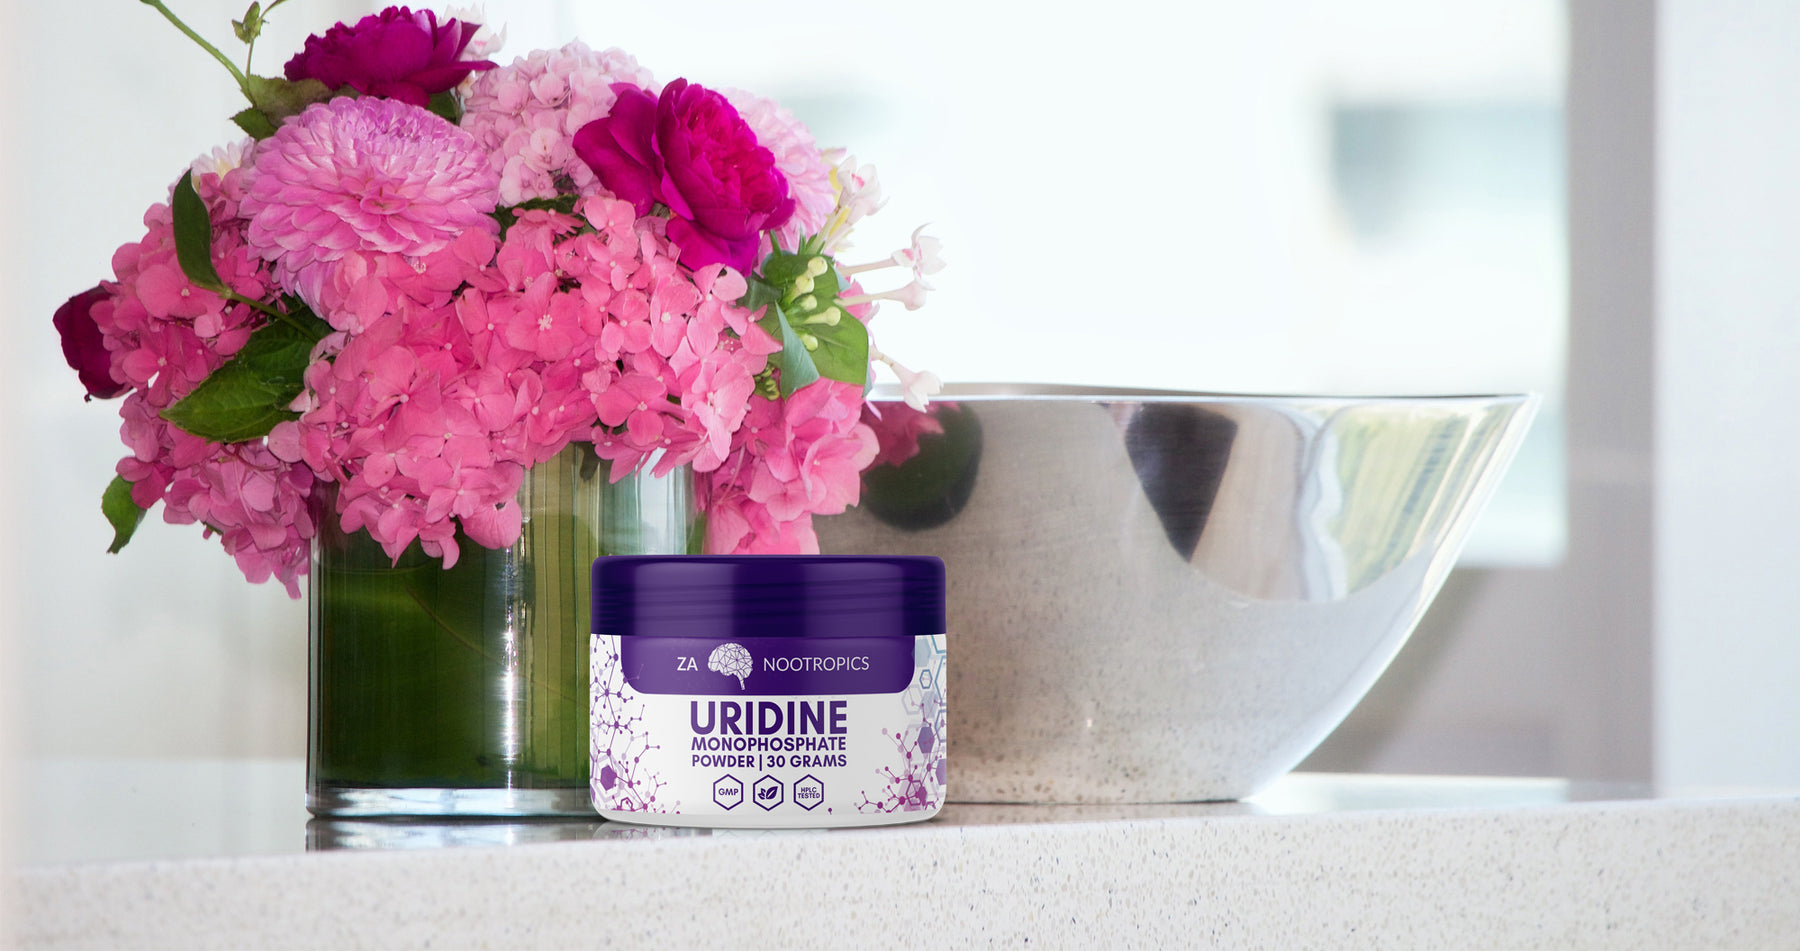 Uridine: 5 Benefits You Might Have Missed